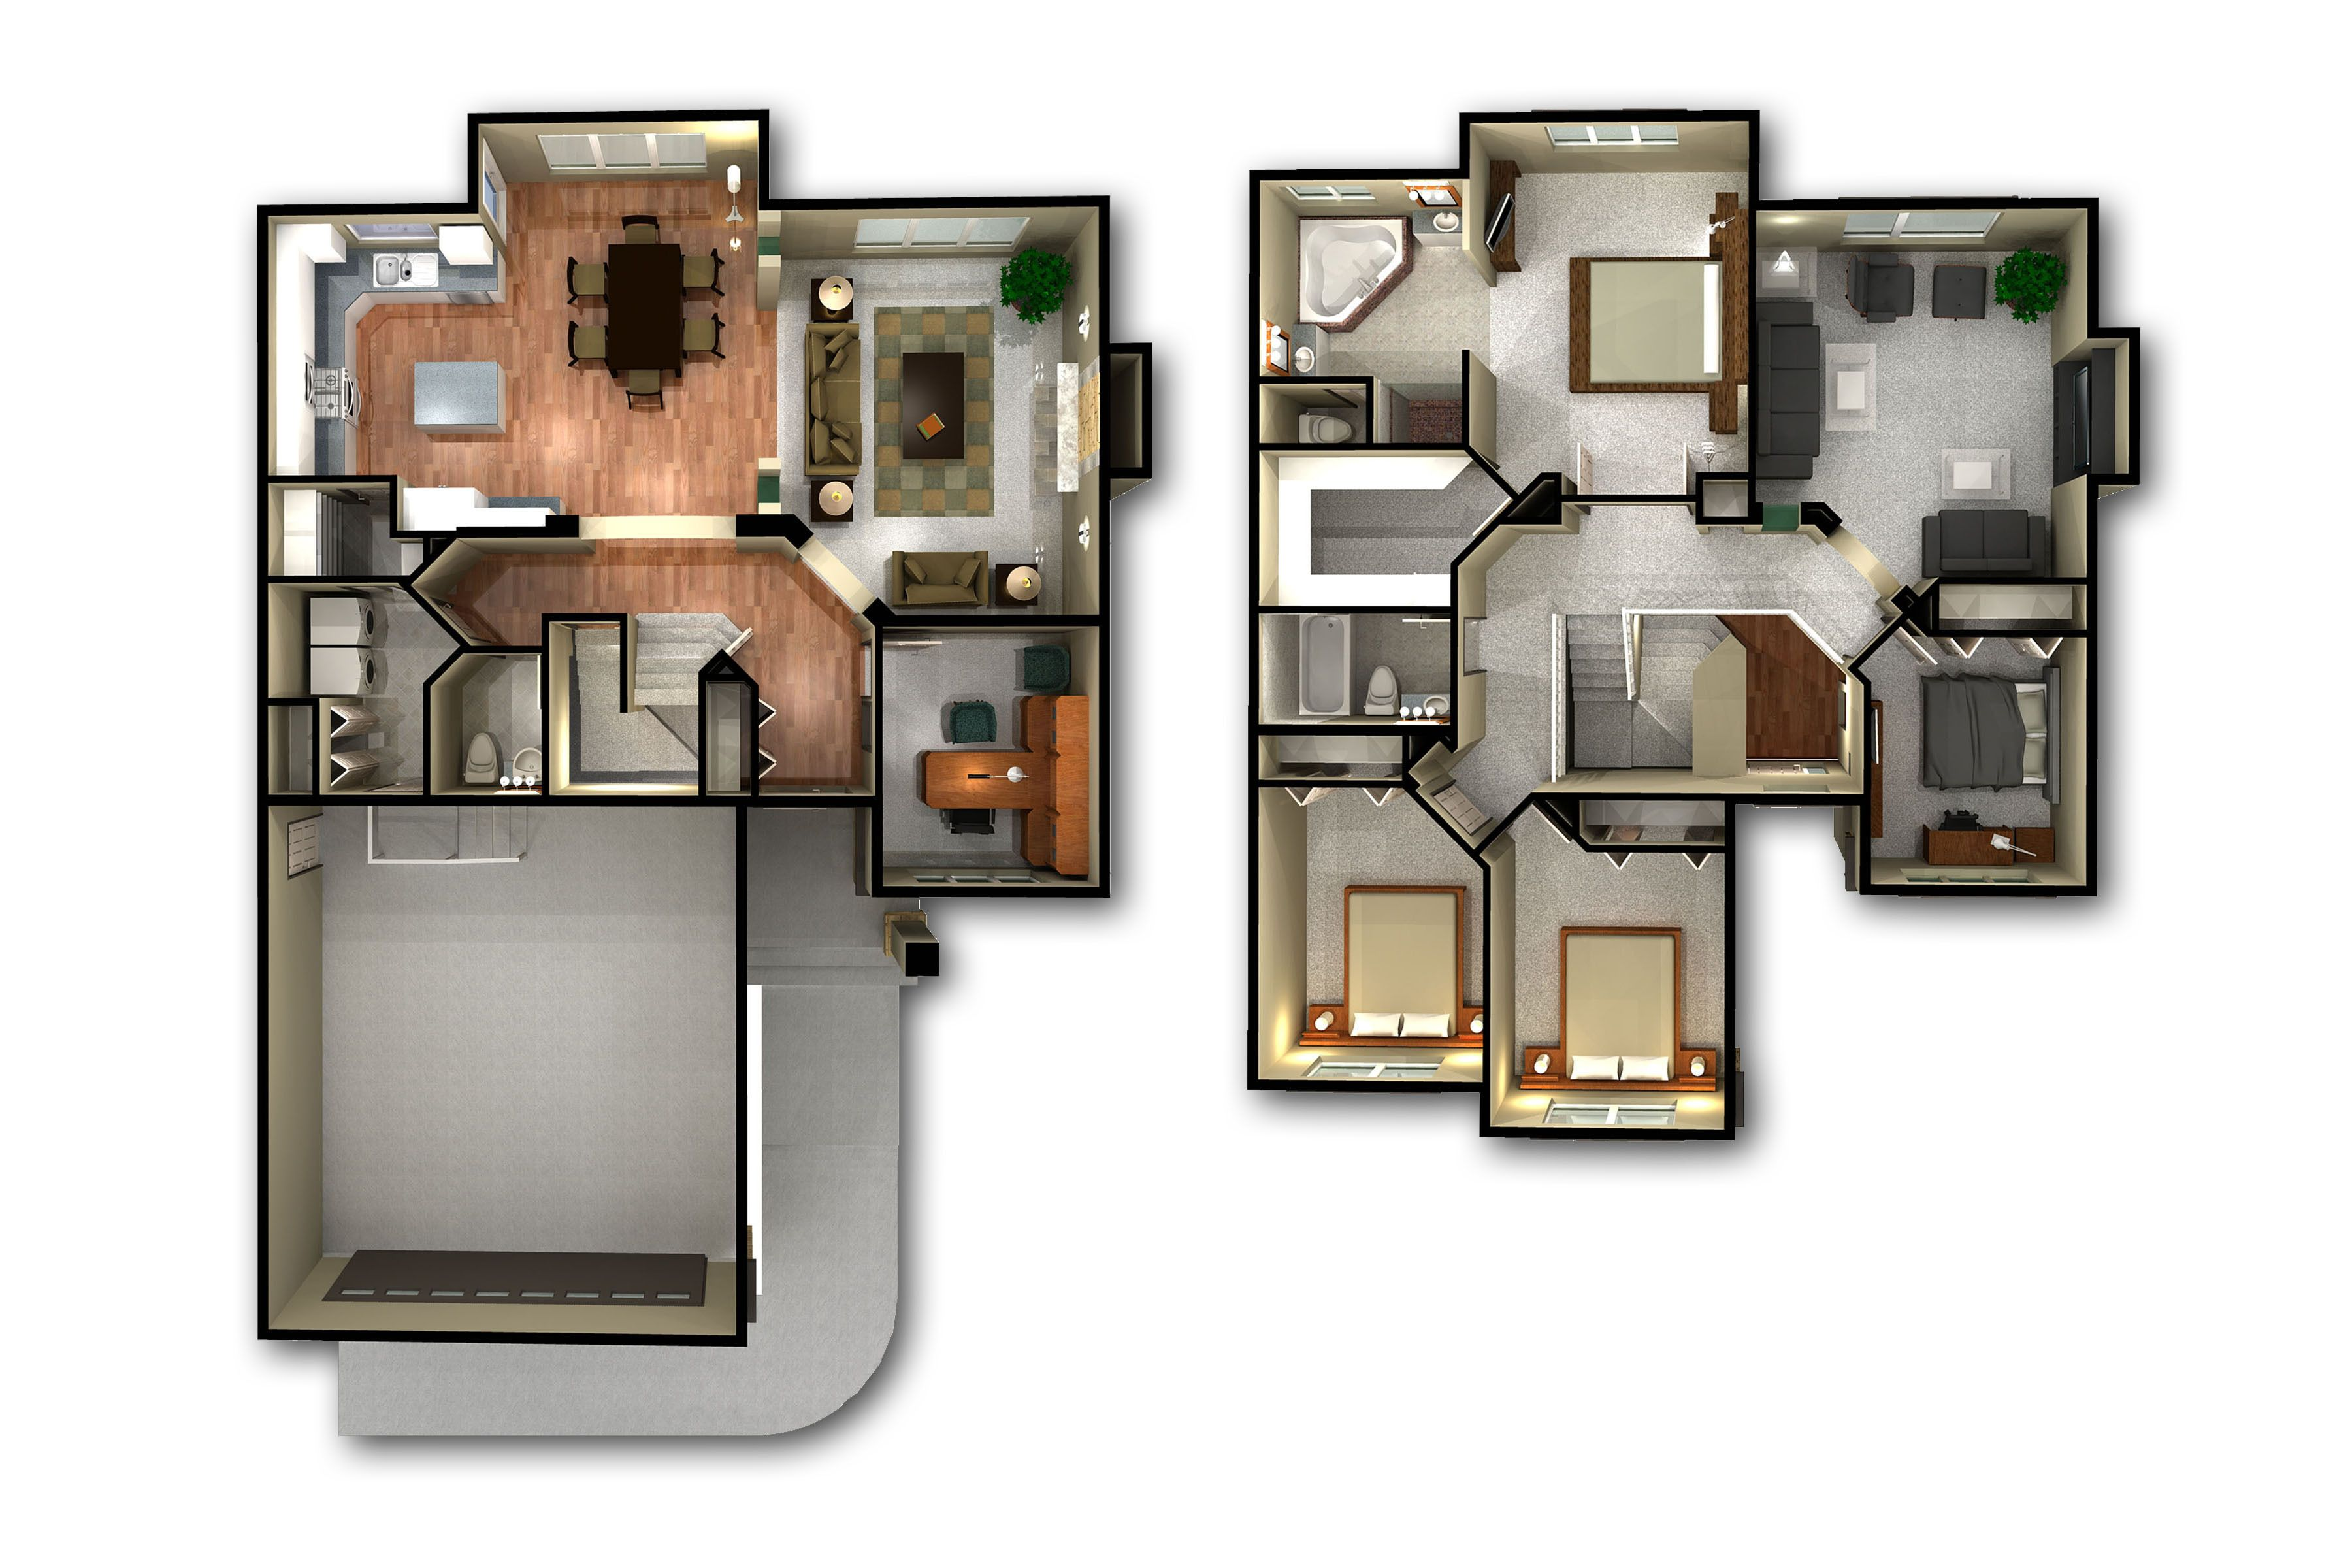 Incredible-3d-2-story-floor-plans-on-apartments-with-floor